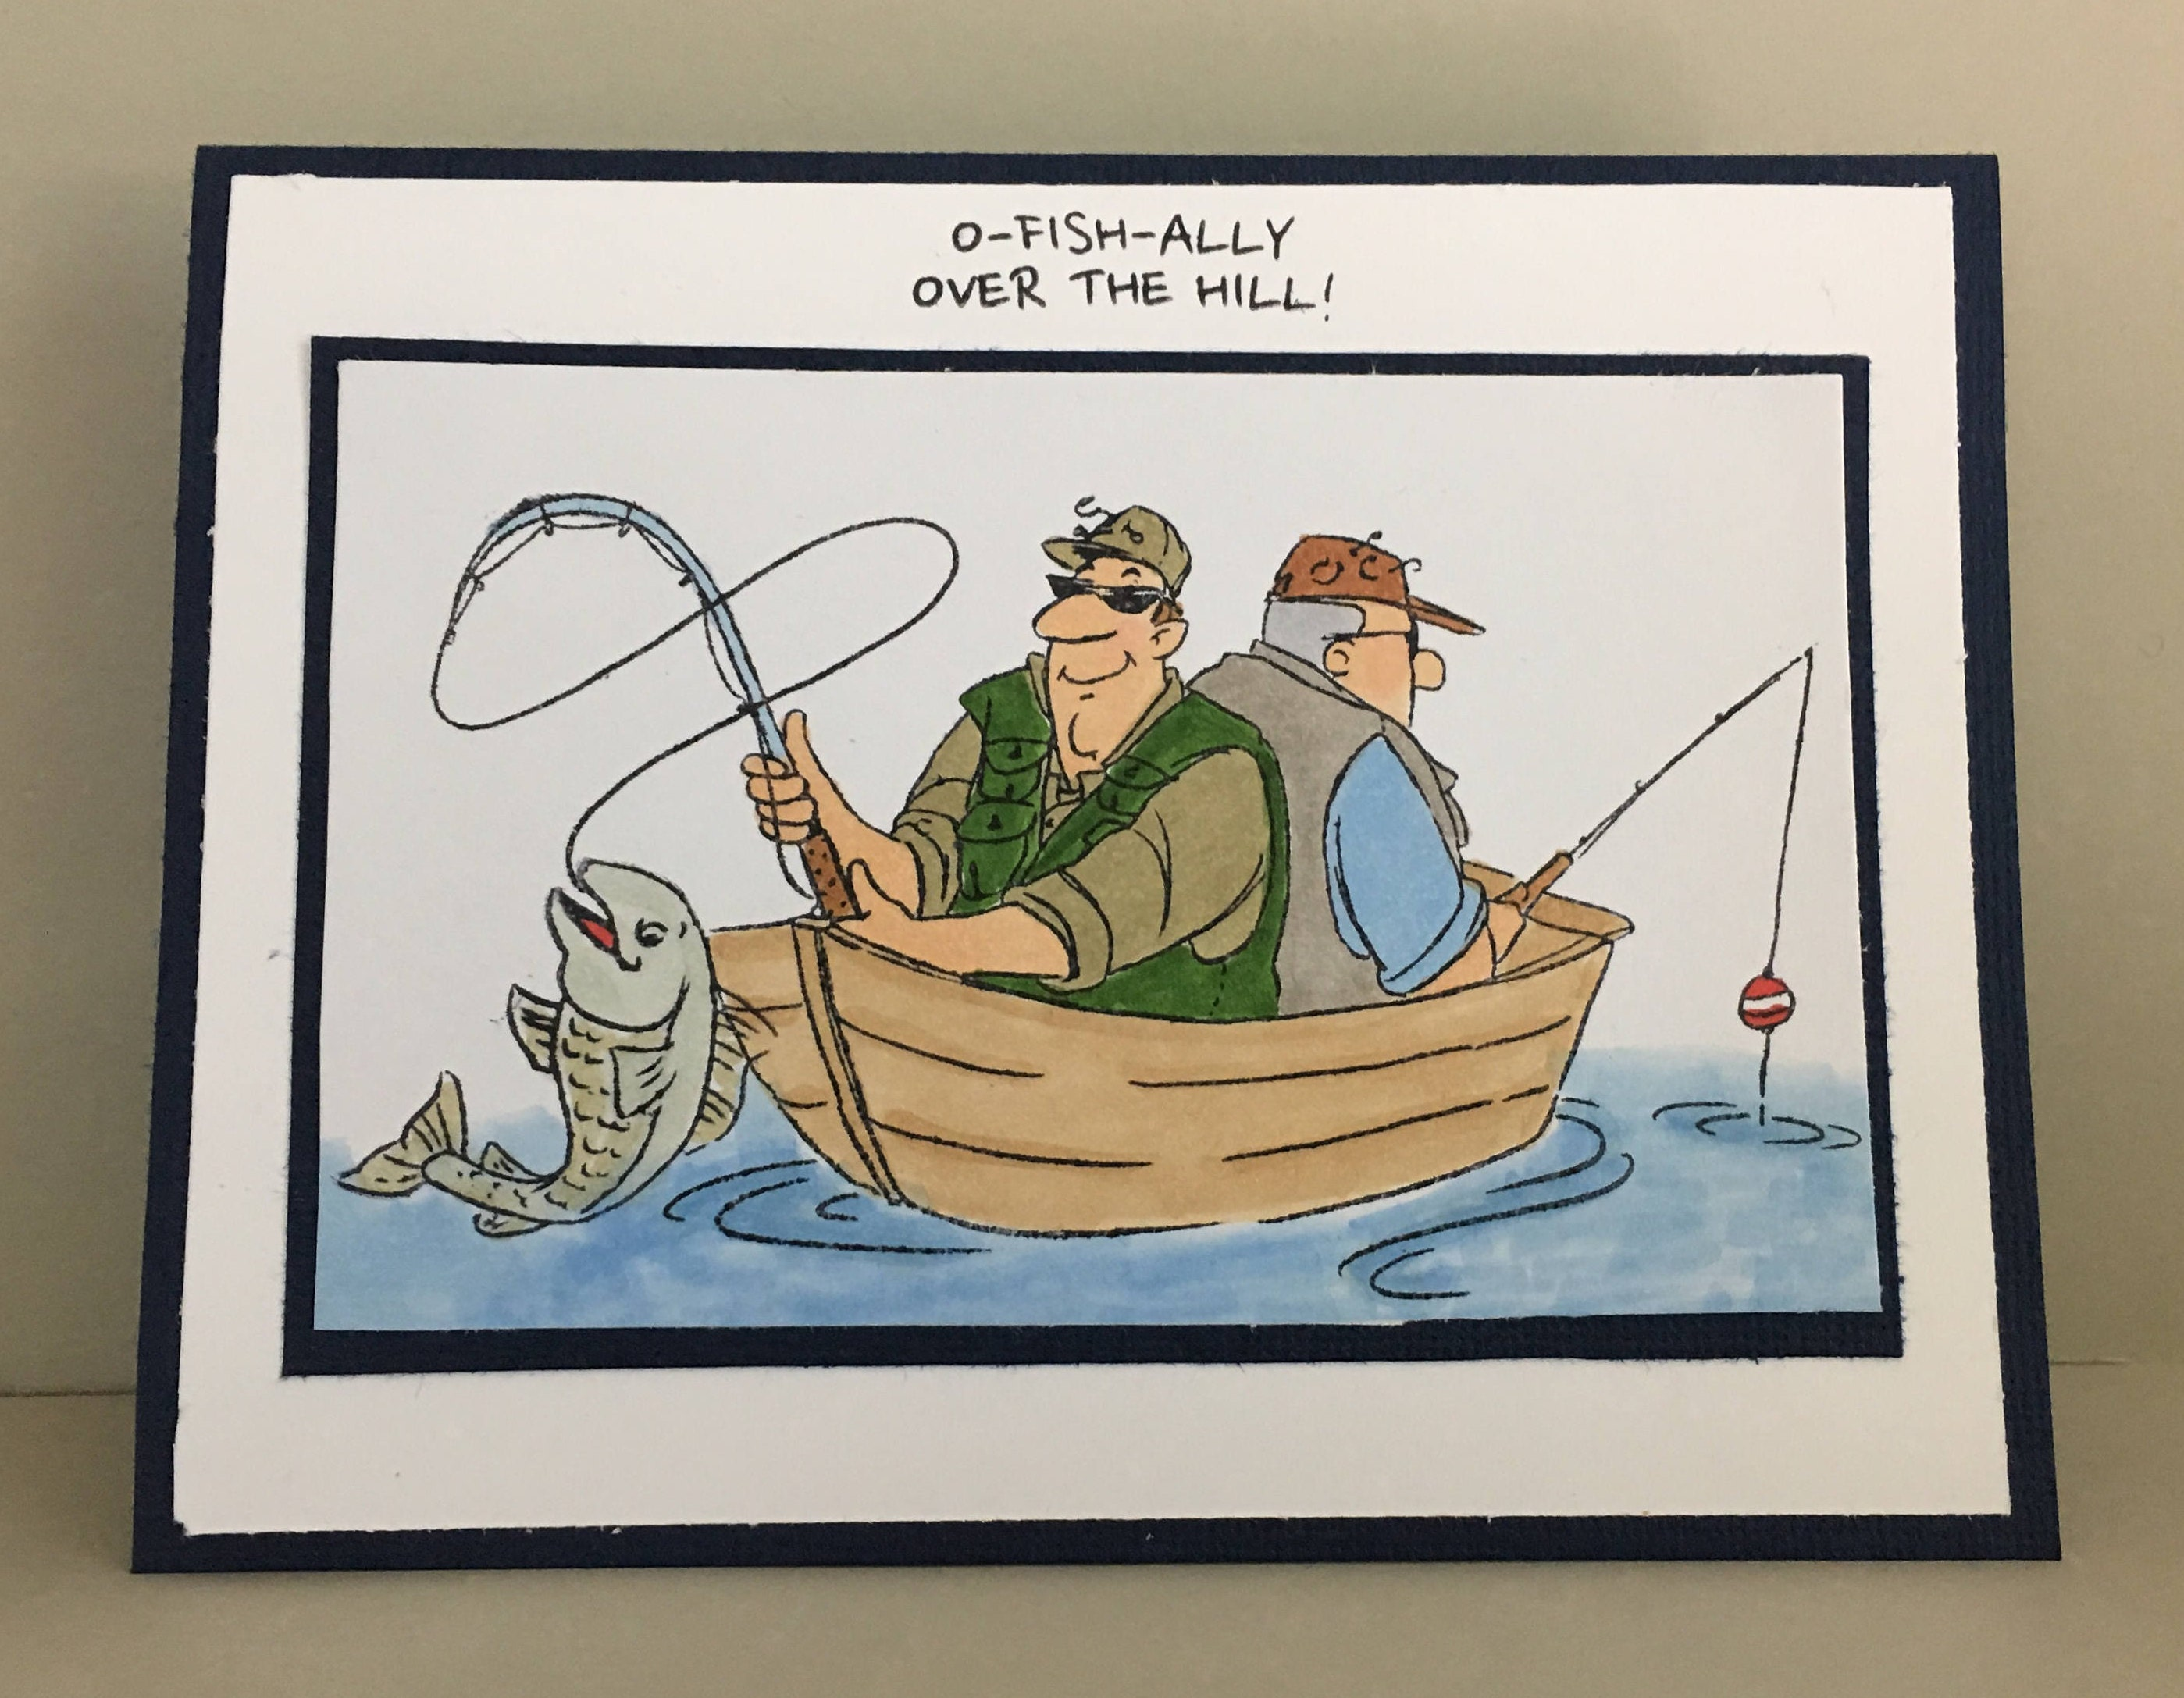 Men fishing card fun birthday card over the hill happy zoom kristyandbryce Choice Image